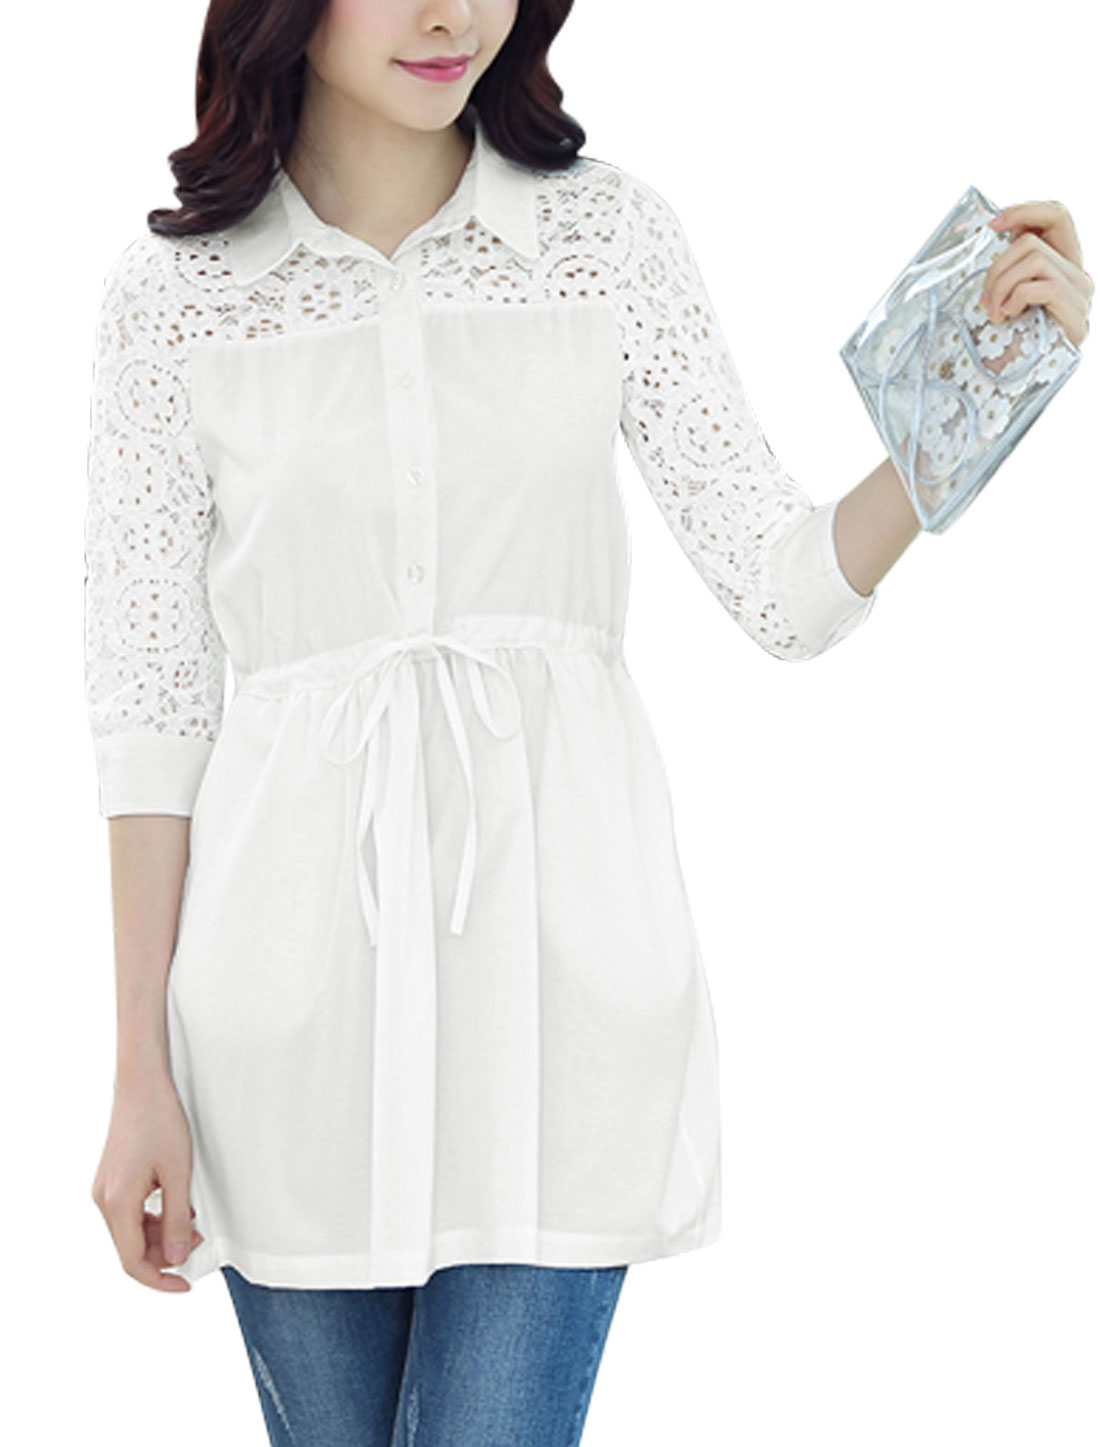 Women Point Collar Half Placket Semi Sheer Yoke Lace Shirt Dress White S